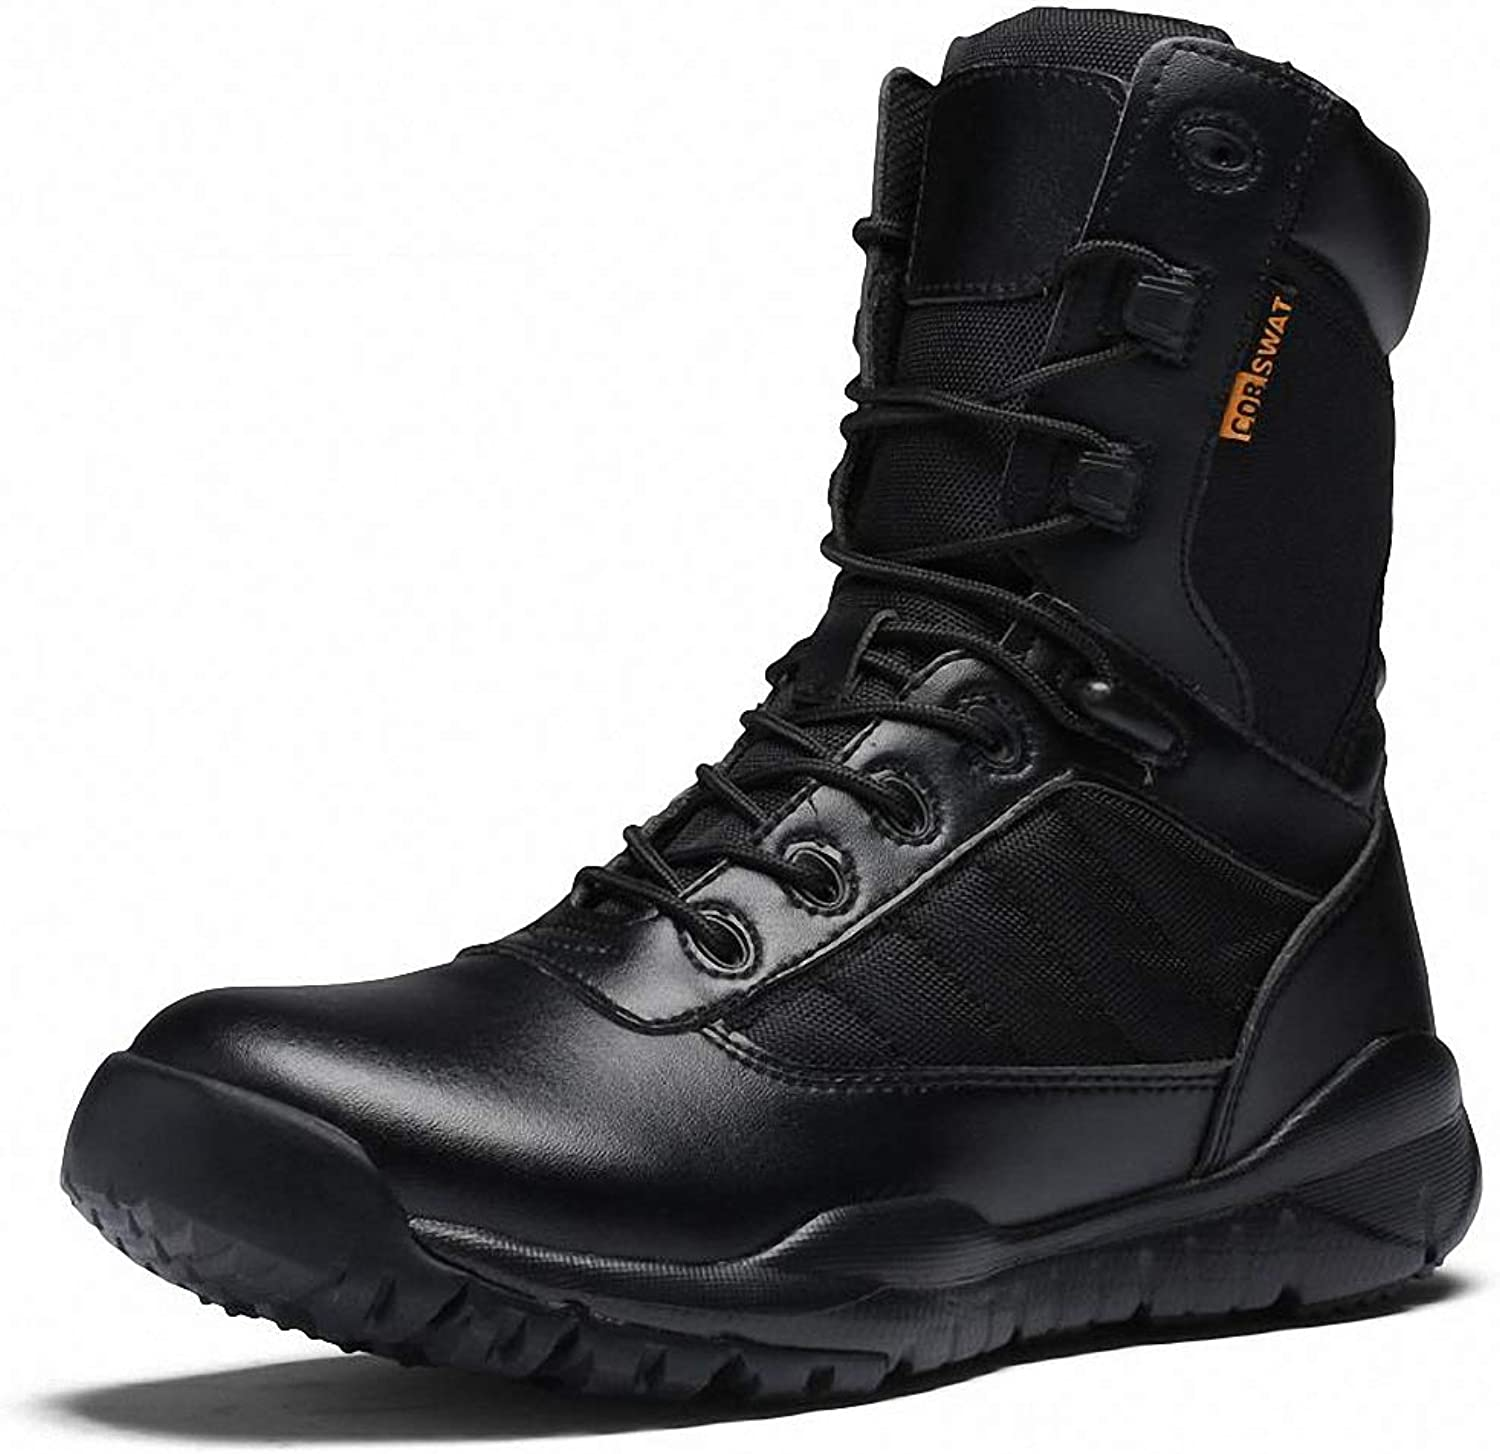 Giles Jones Men's Hiking Boots Tactical Breathable Camping Climbing Mountain Boots